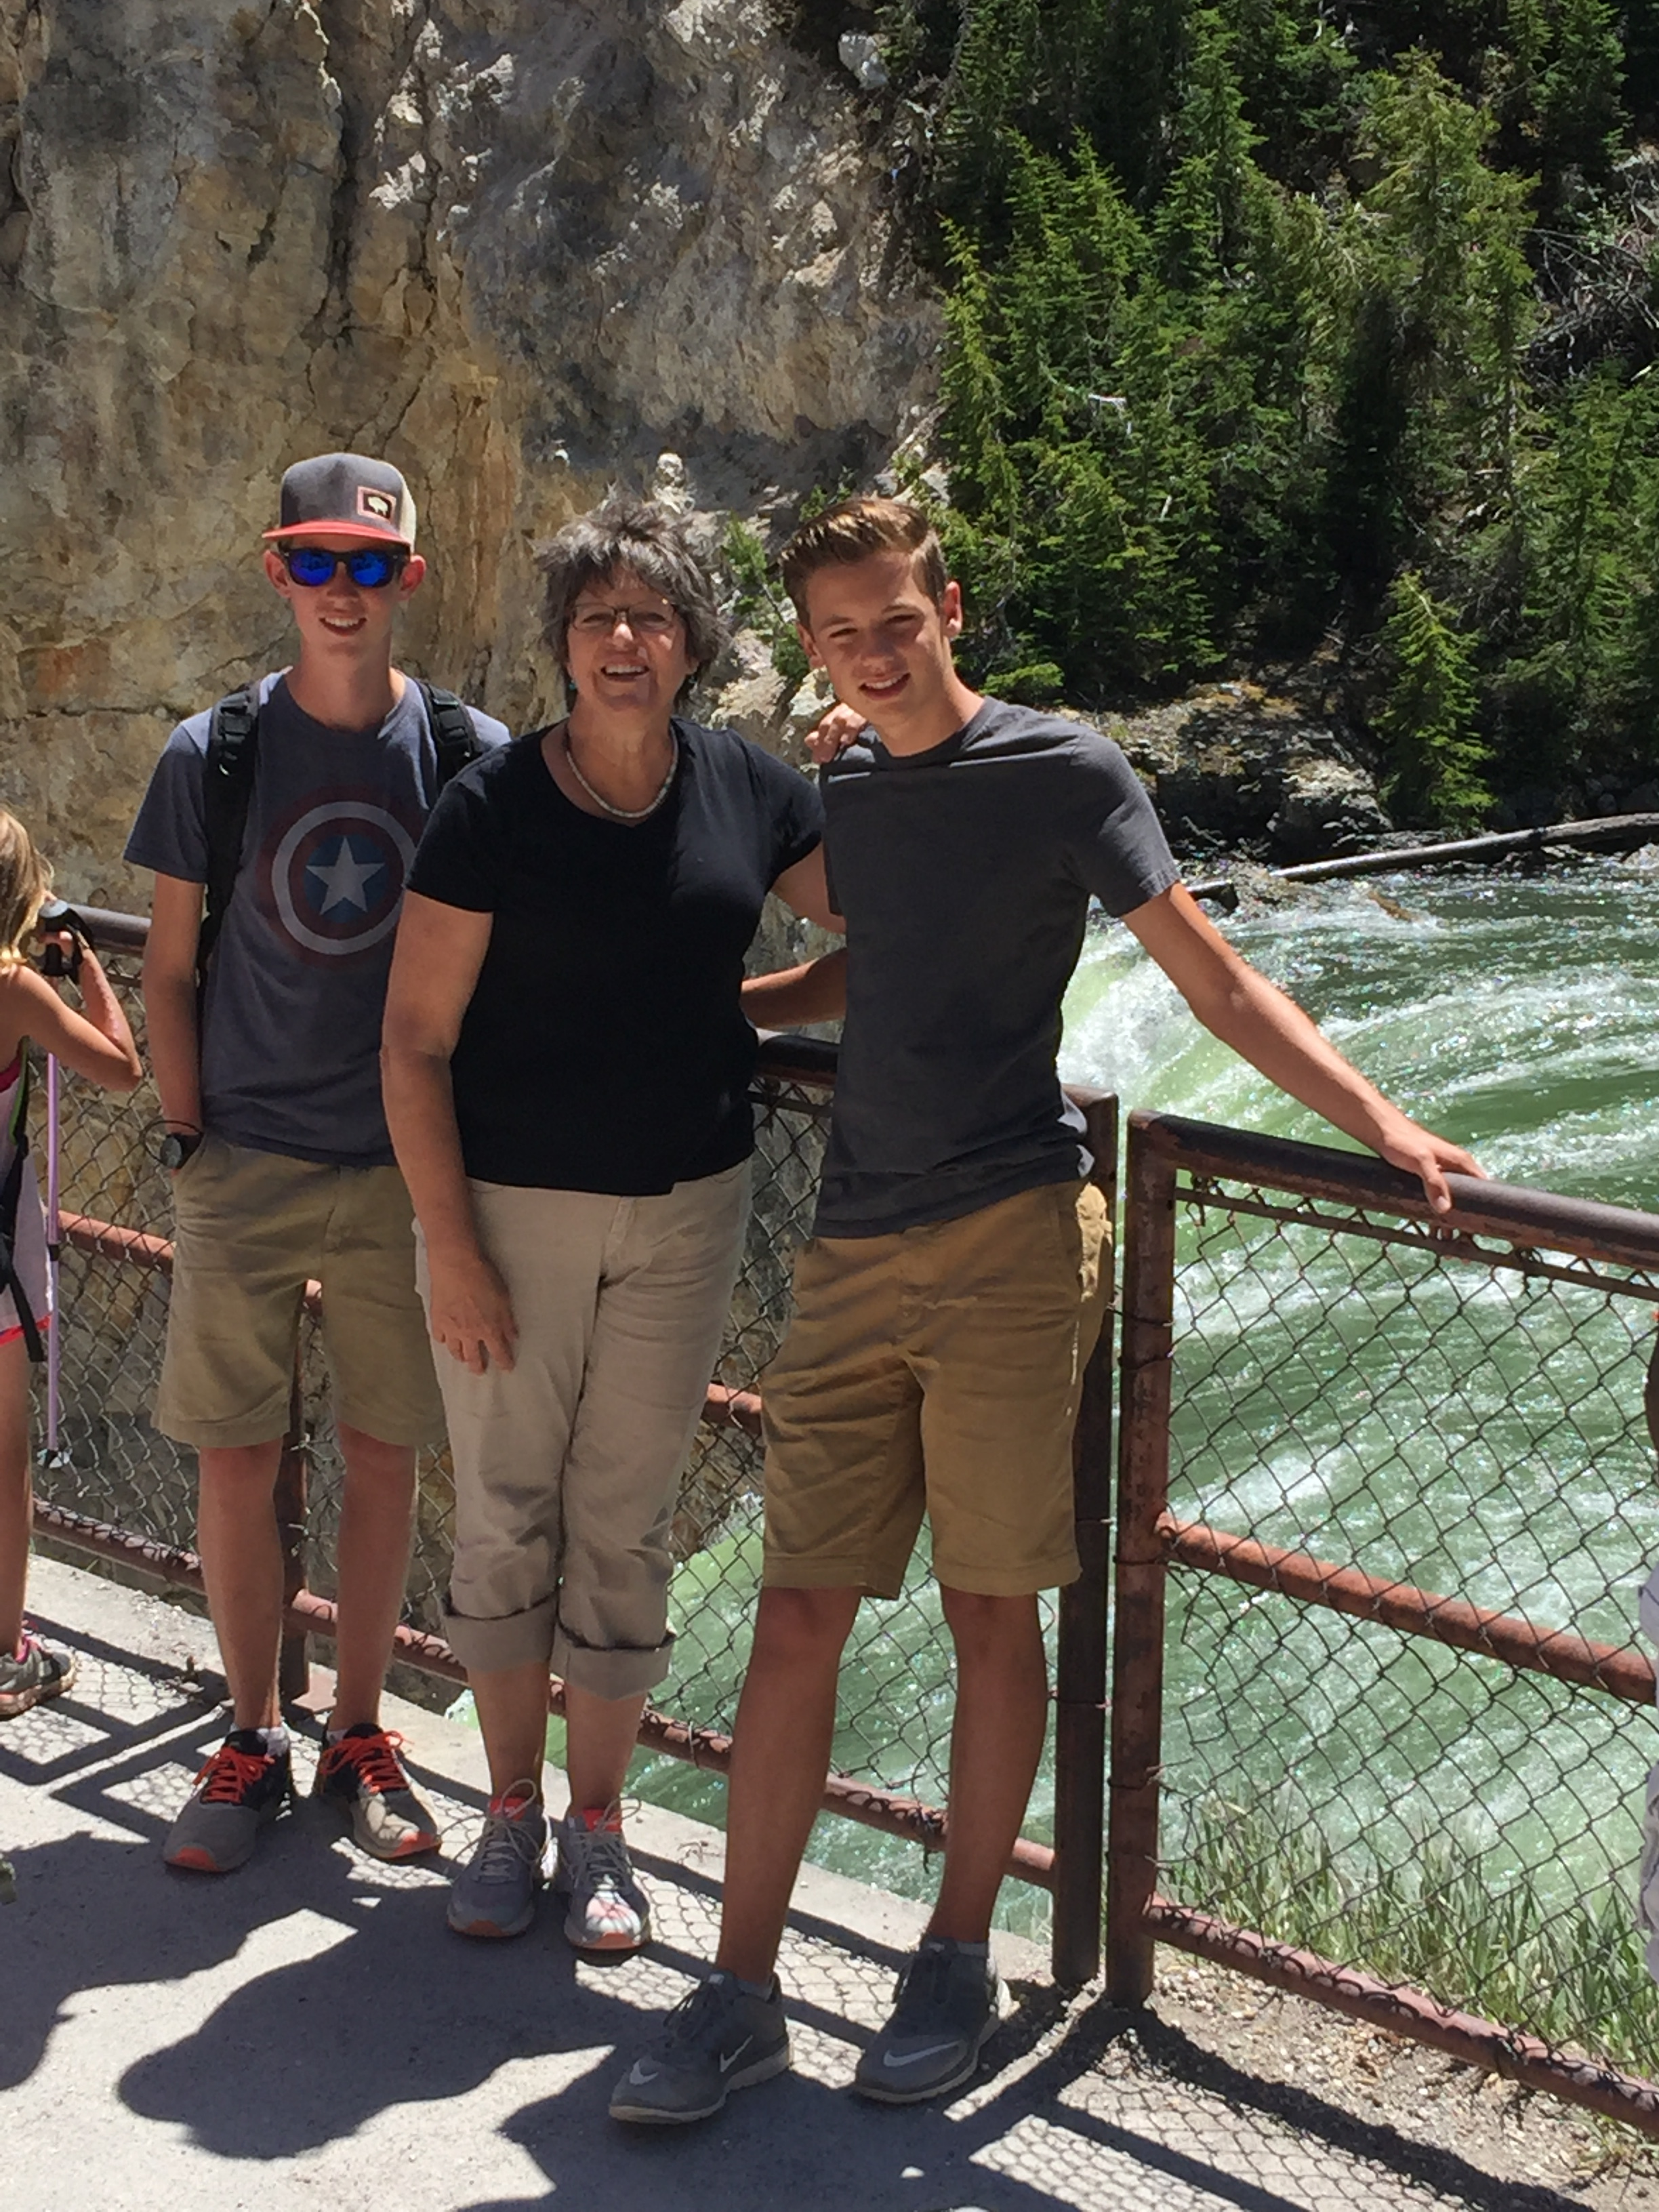 Happy to be here with these wonderful young men.  Brink of Lower Falls - YNP